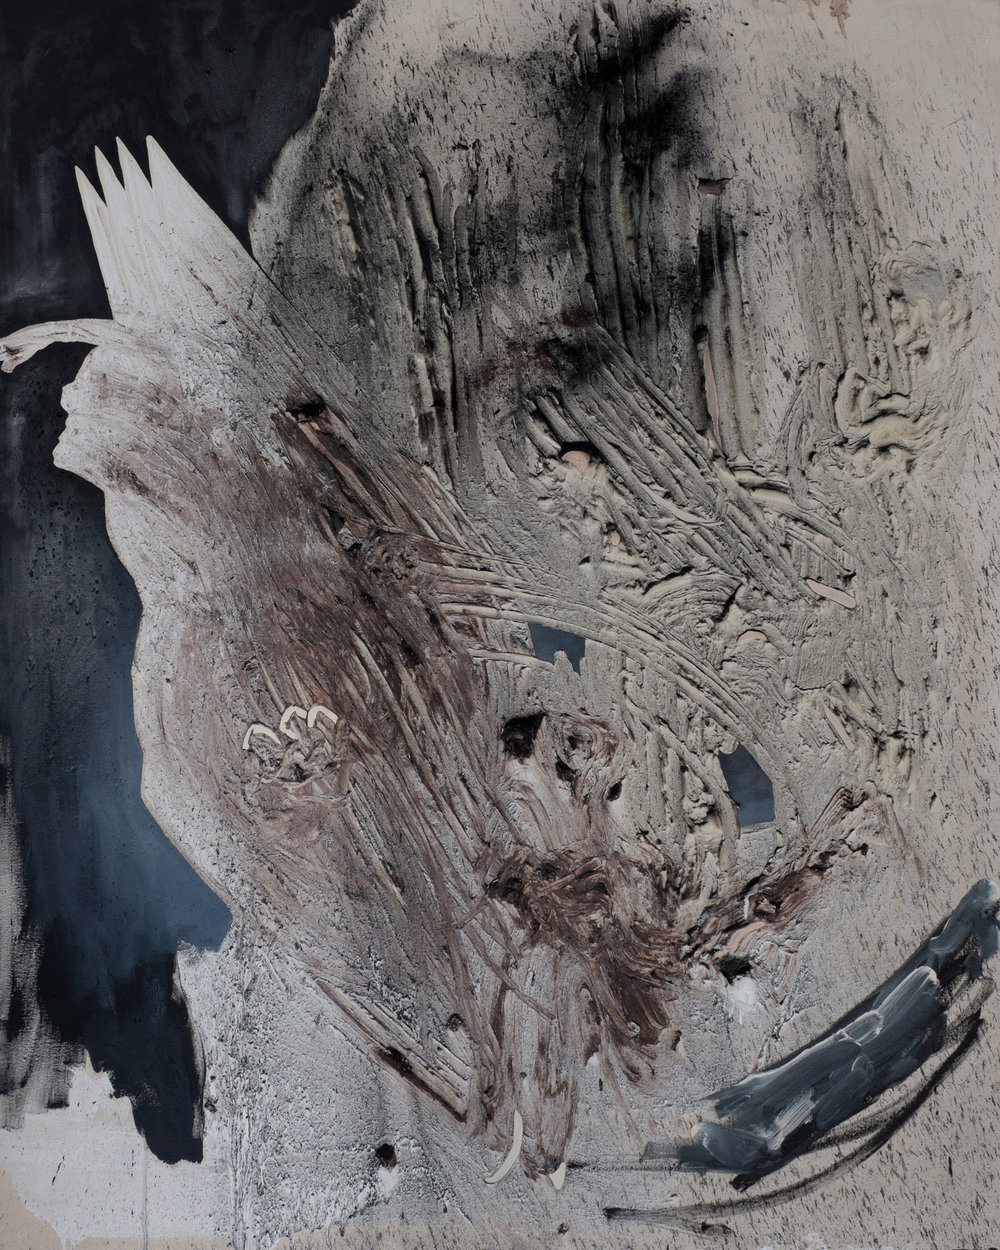 Lascaux 2, Cold Wax Medium, Oil, and Raw Pigments on Canvas, 6x5 feet, 2015